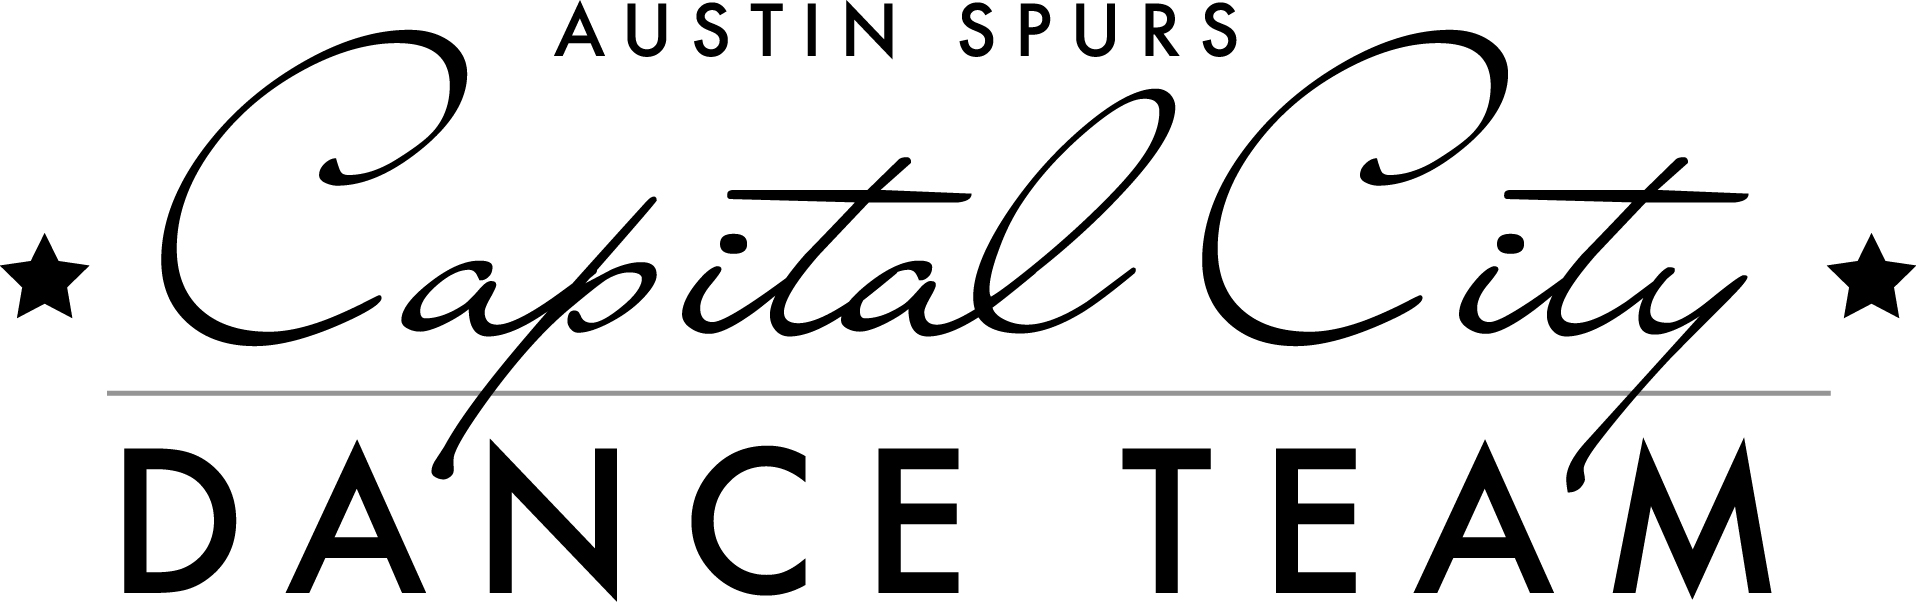 Capcitydance logo